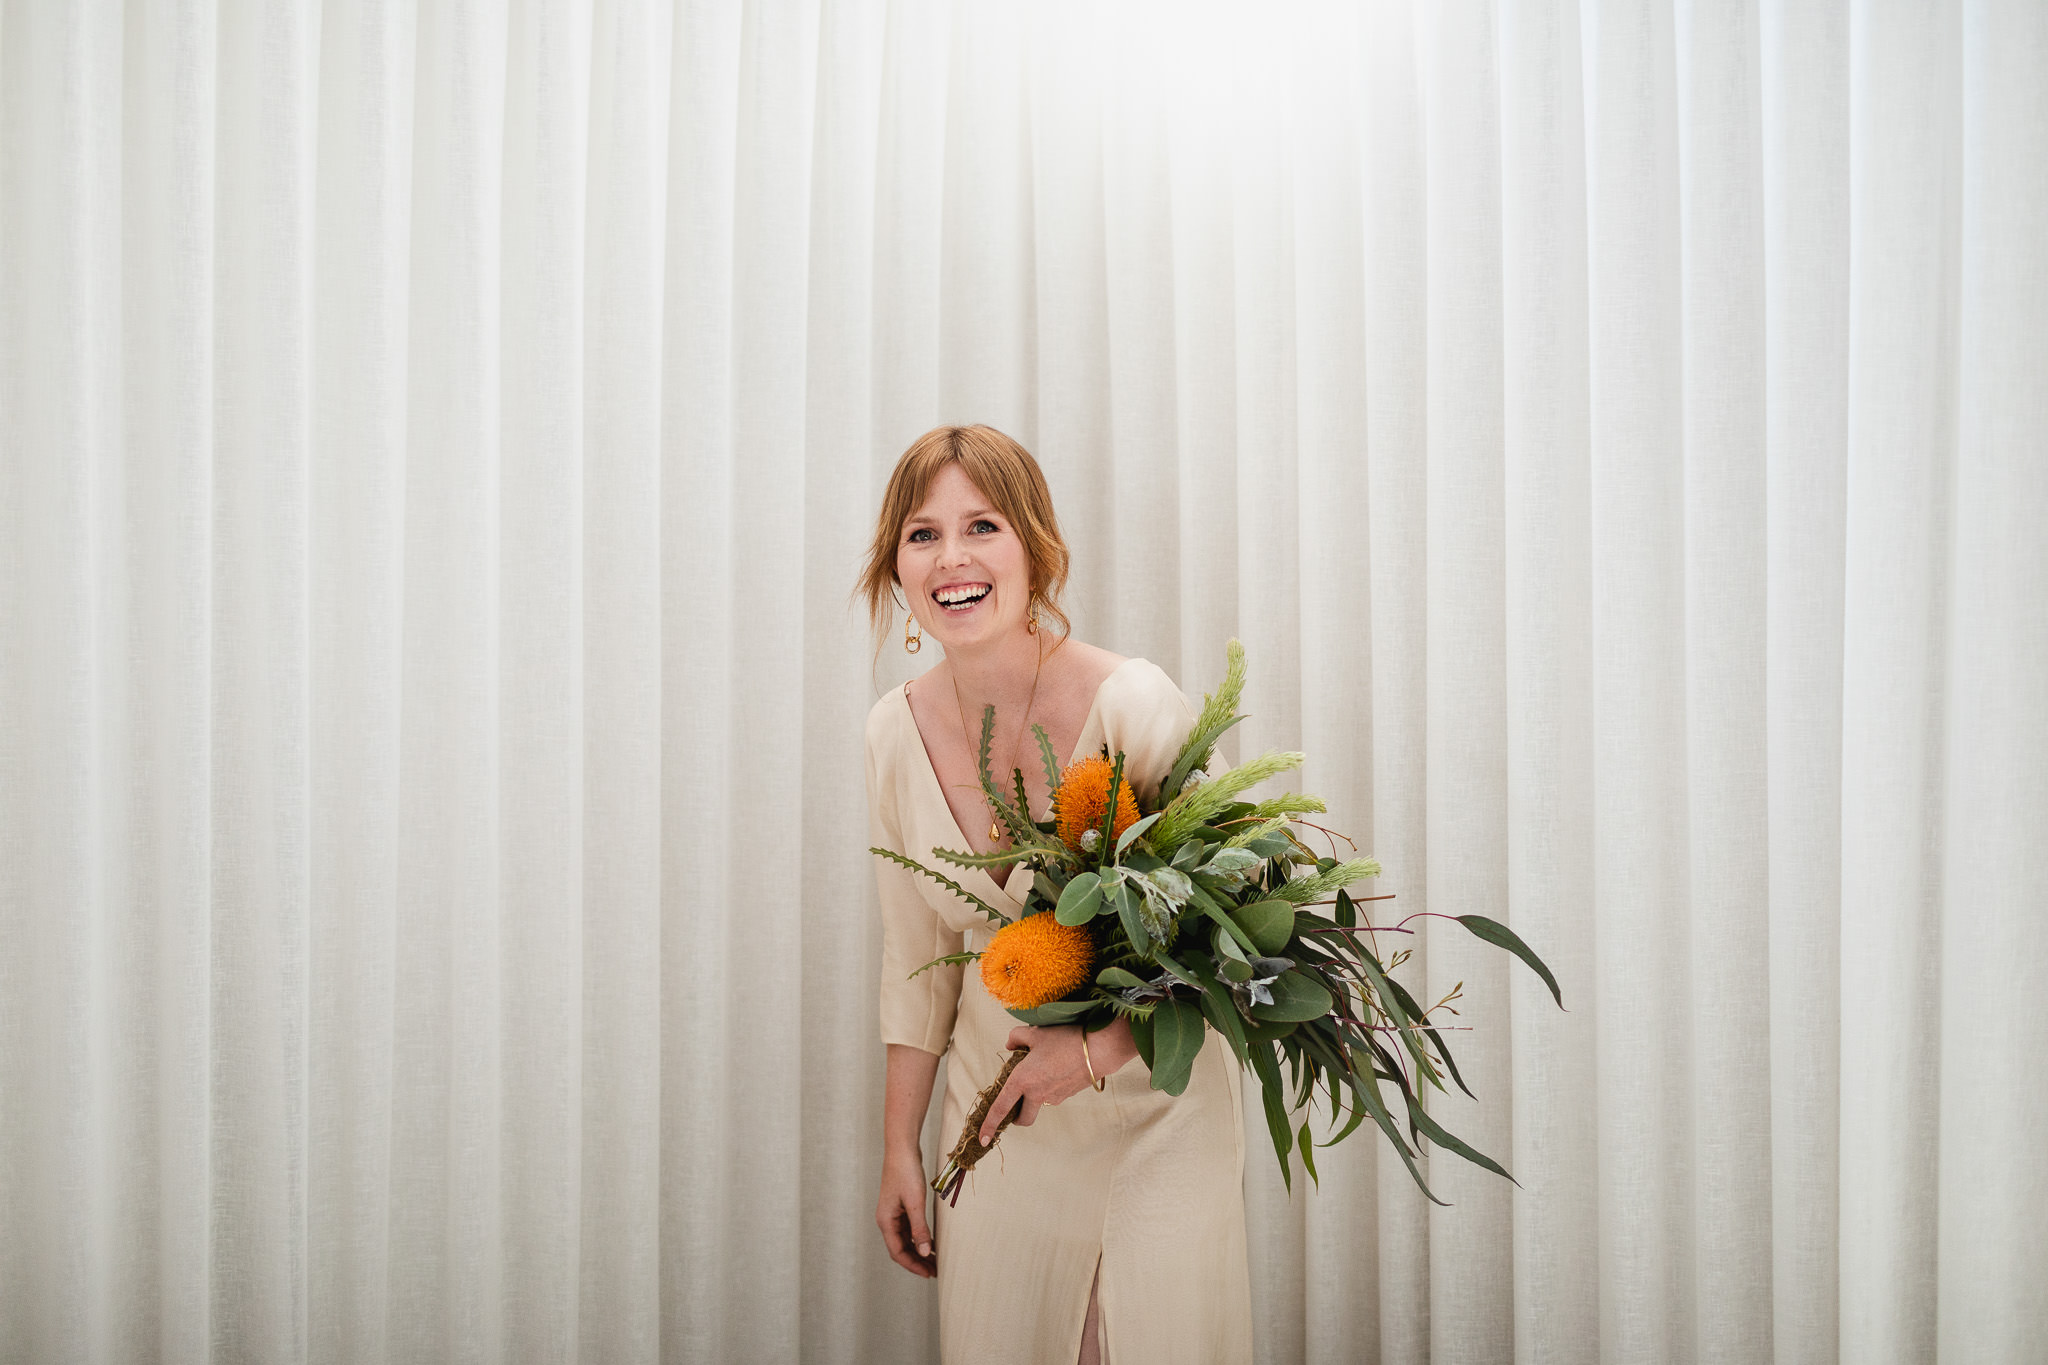 Bride with red hair laughing while holding a wedding bouquet with orange and yellow banksia and native Australian flowers